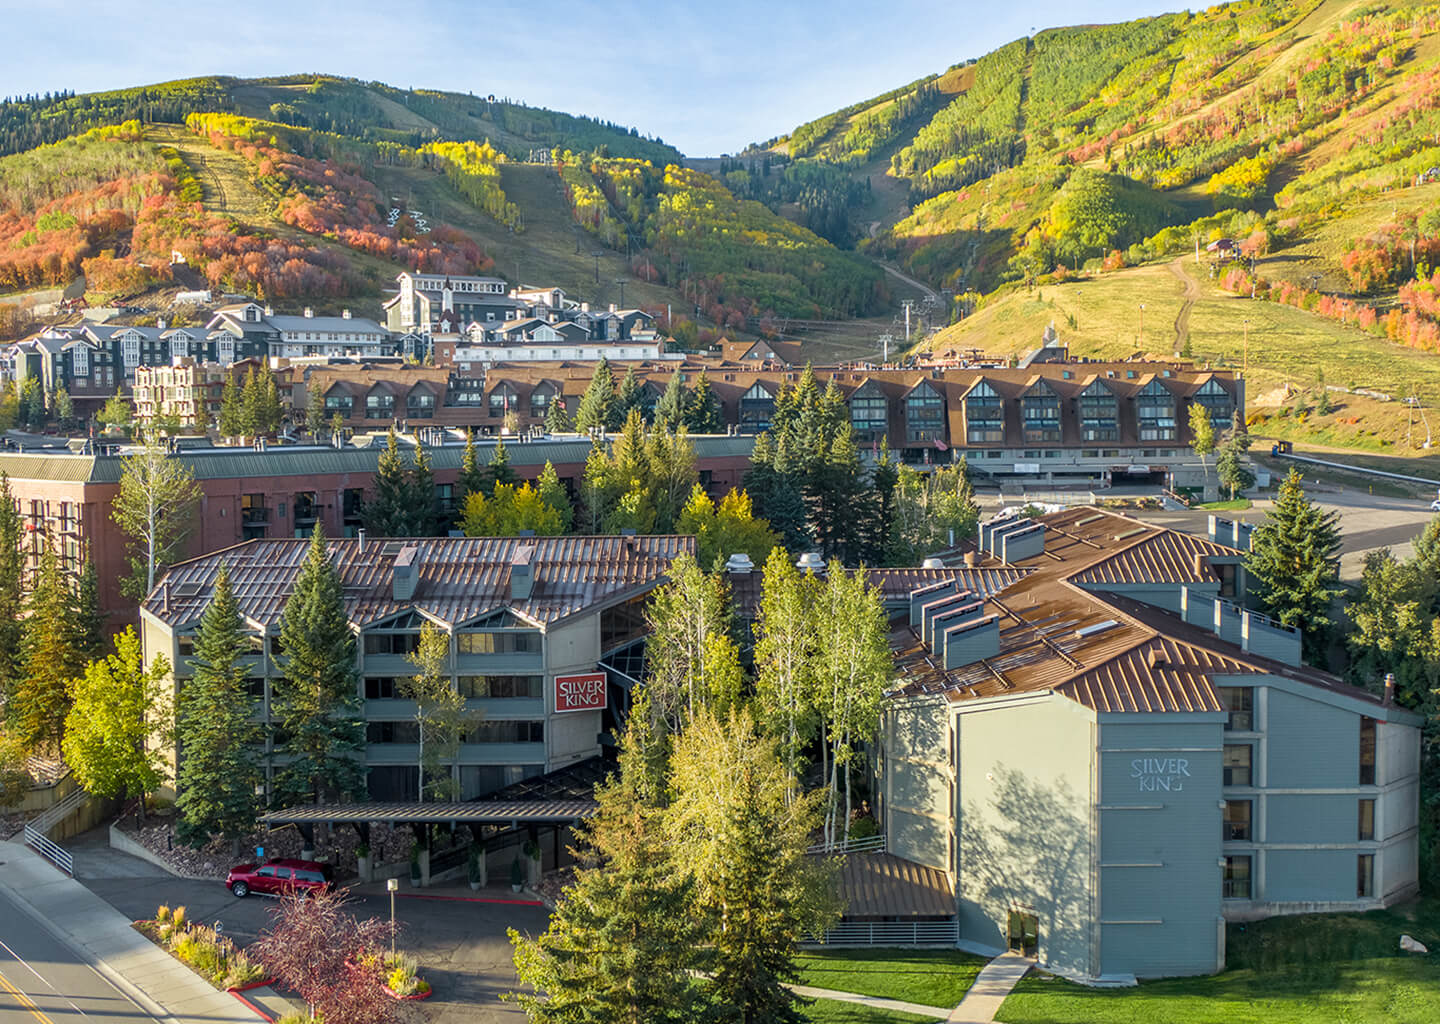 Silver King in Park City on a Golden Summer Afternoon